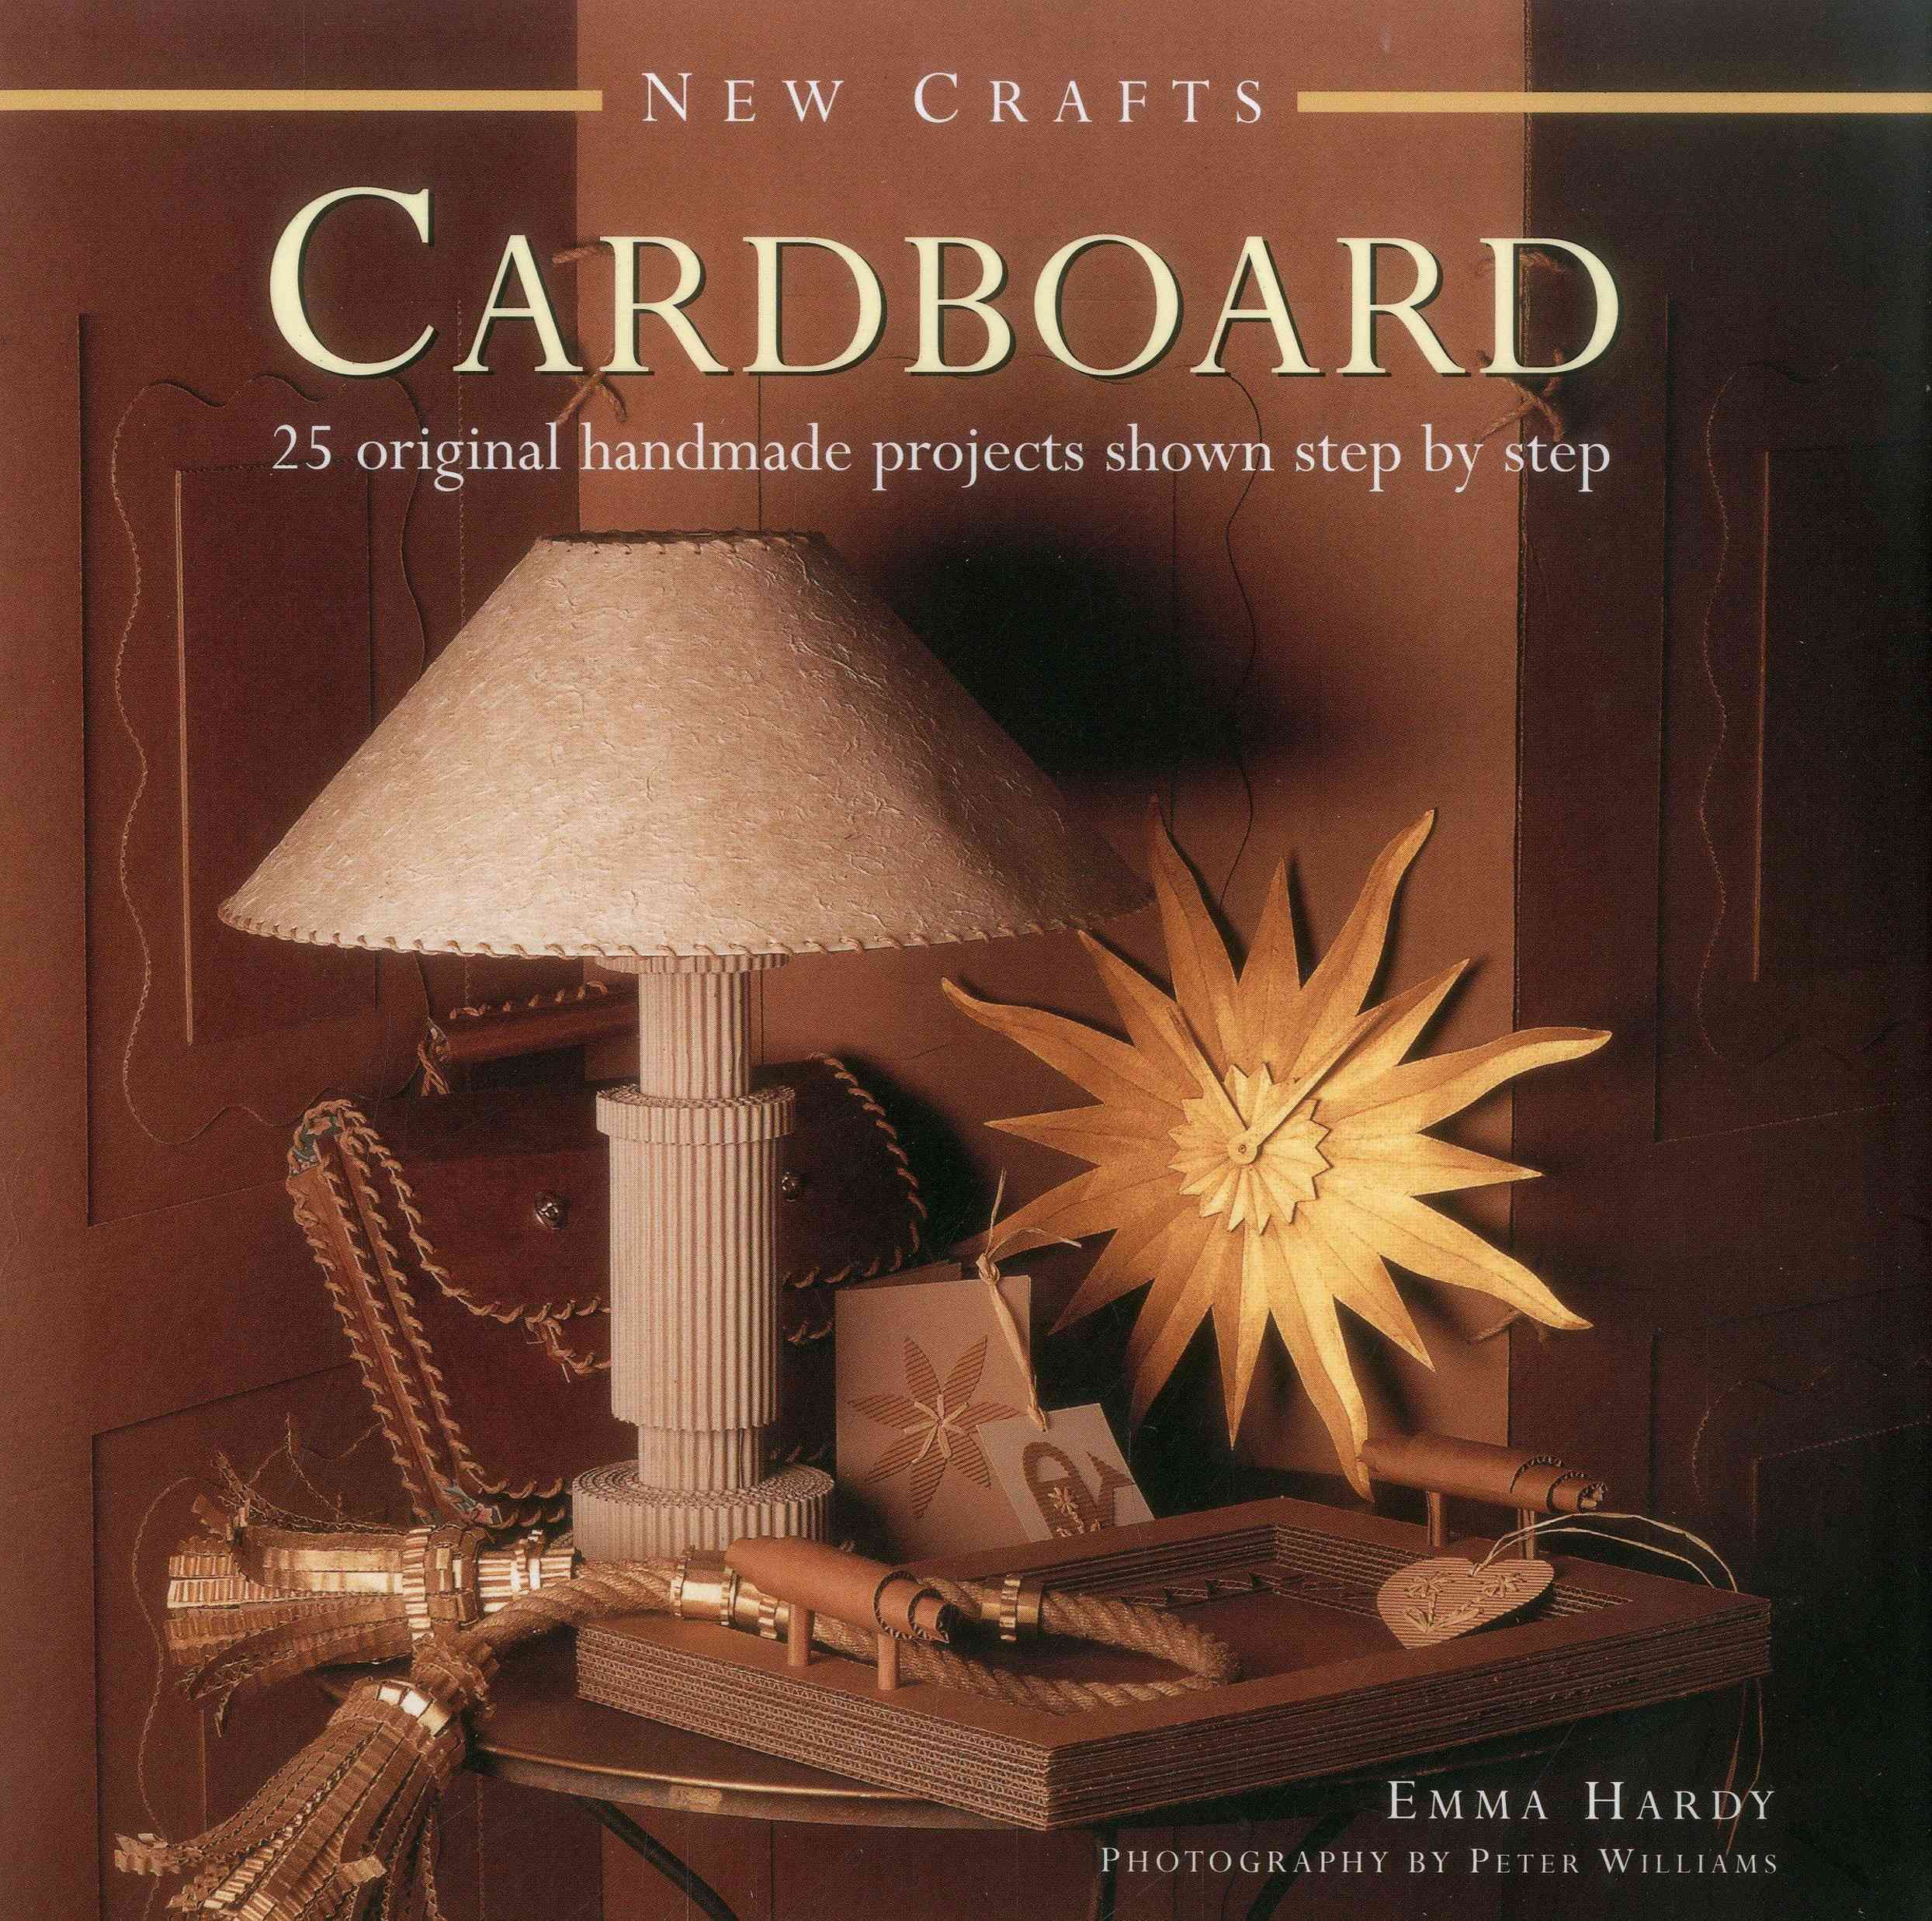 How To Make A Decorative Book Cover ~ Cardboard original handmade projects shown step by step